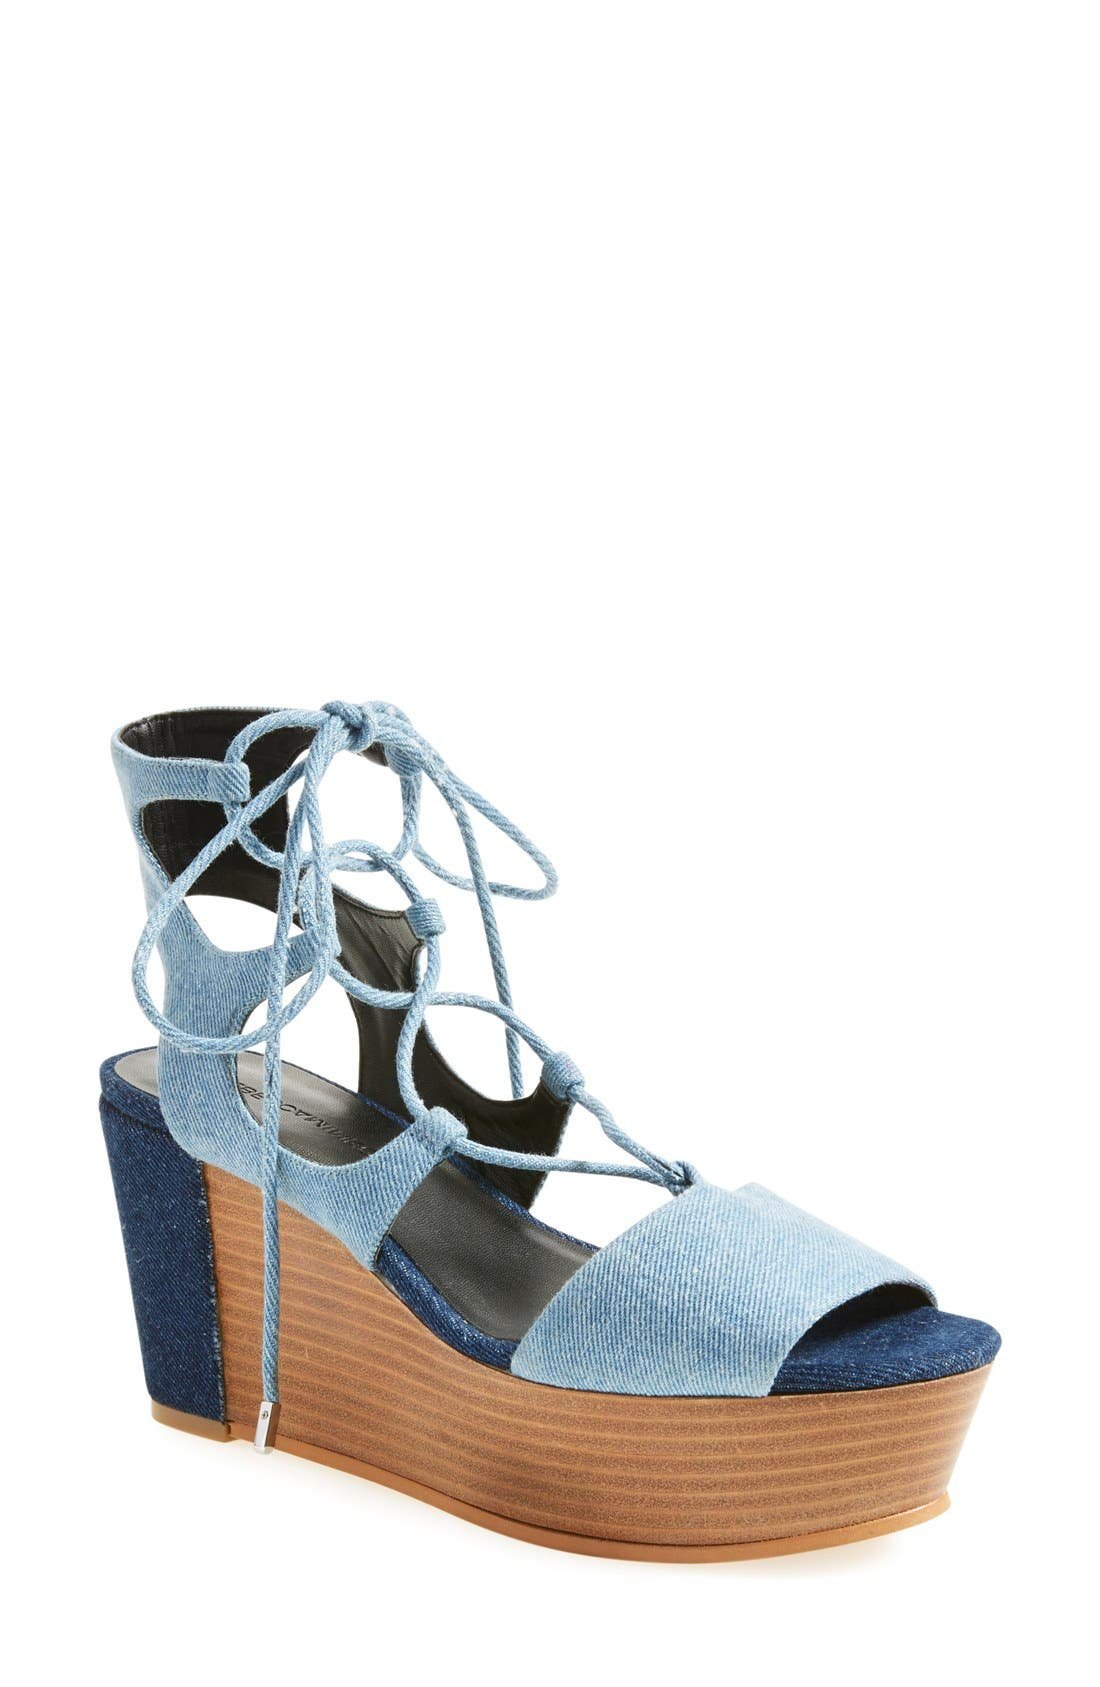 Alternate Image 1 Selected - Rebecca Minkoff Cady Wedge Sandal (Women)